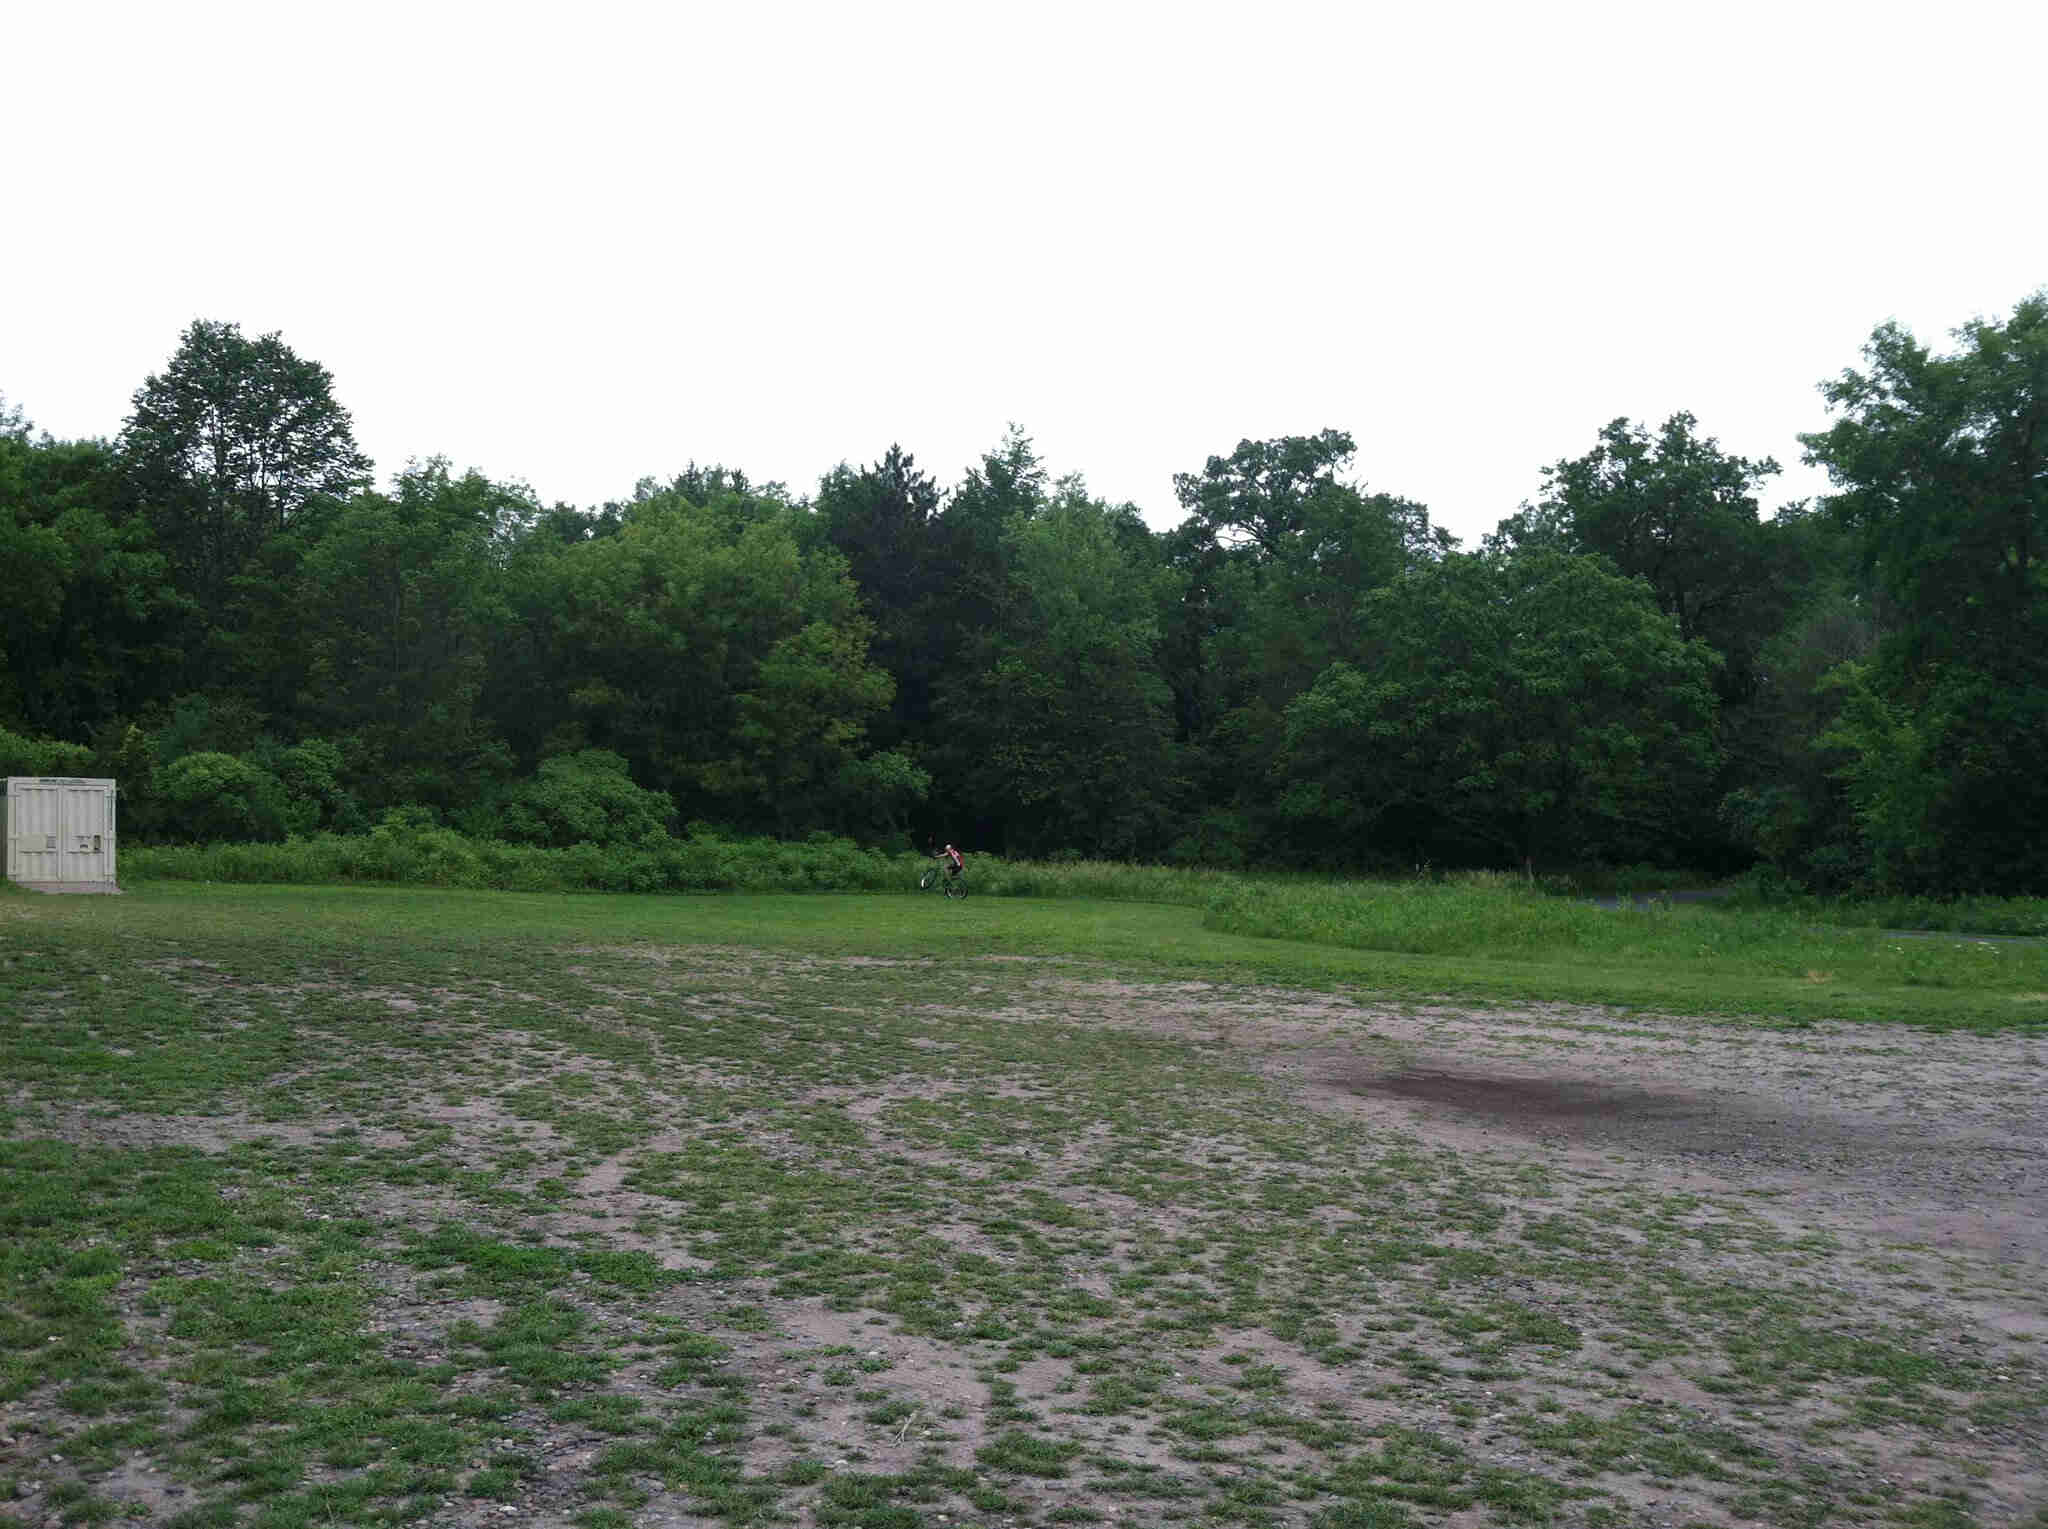 A dirt and grass field with a cyclist in the distance, riding a Surly Krampus bike across a tree line